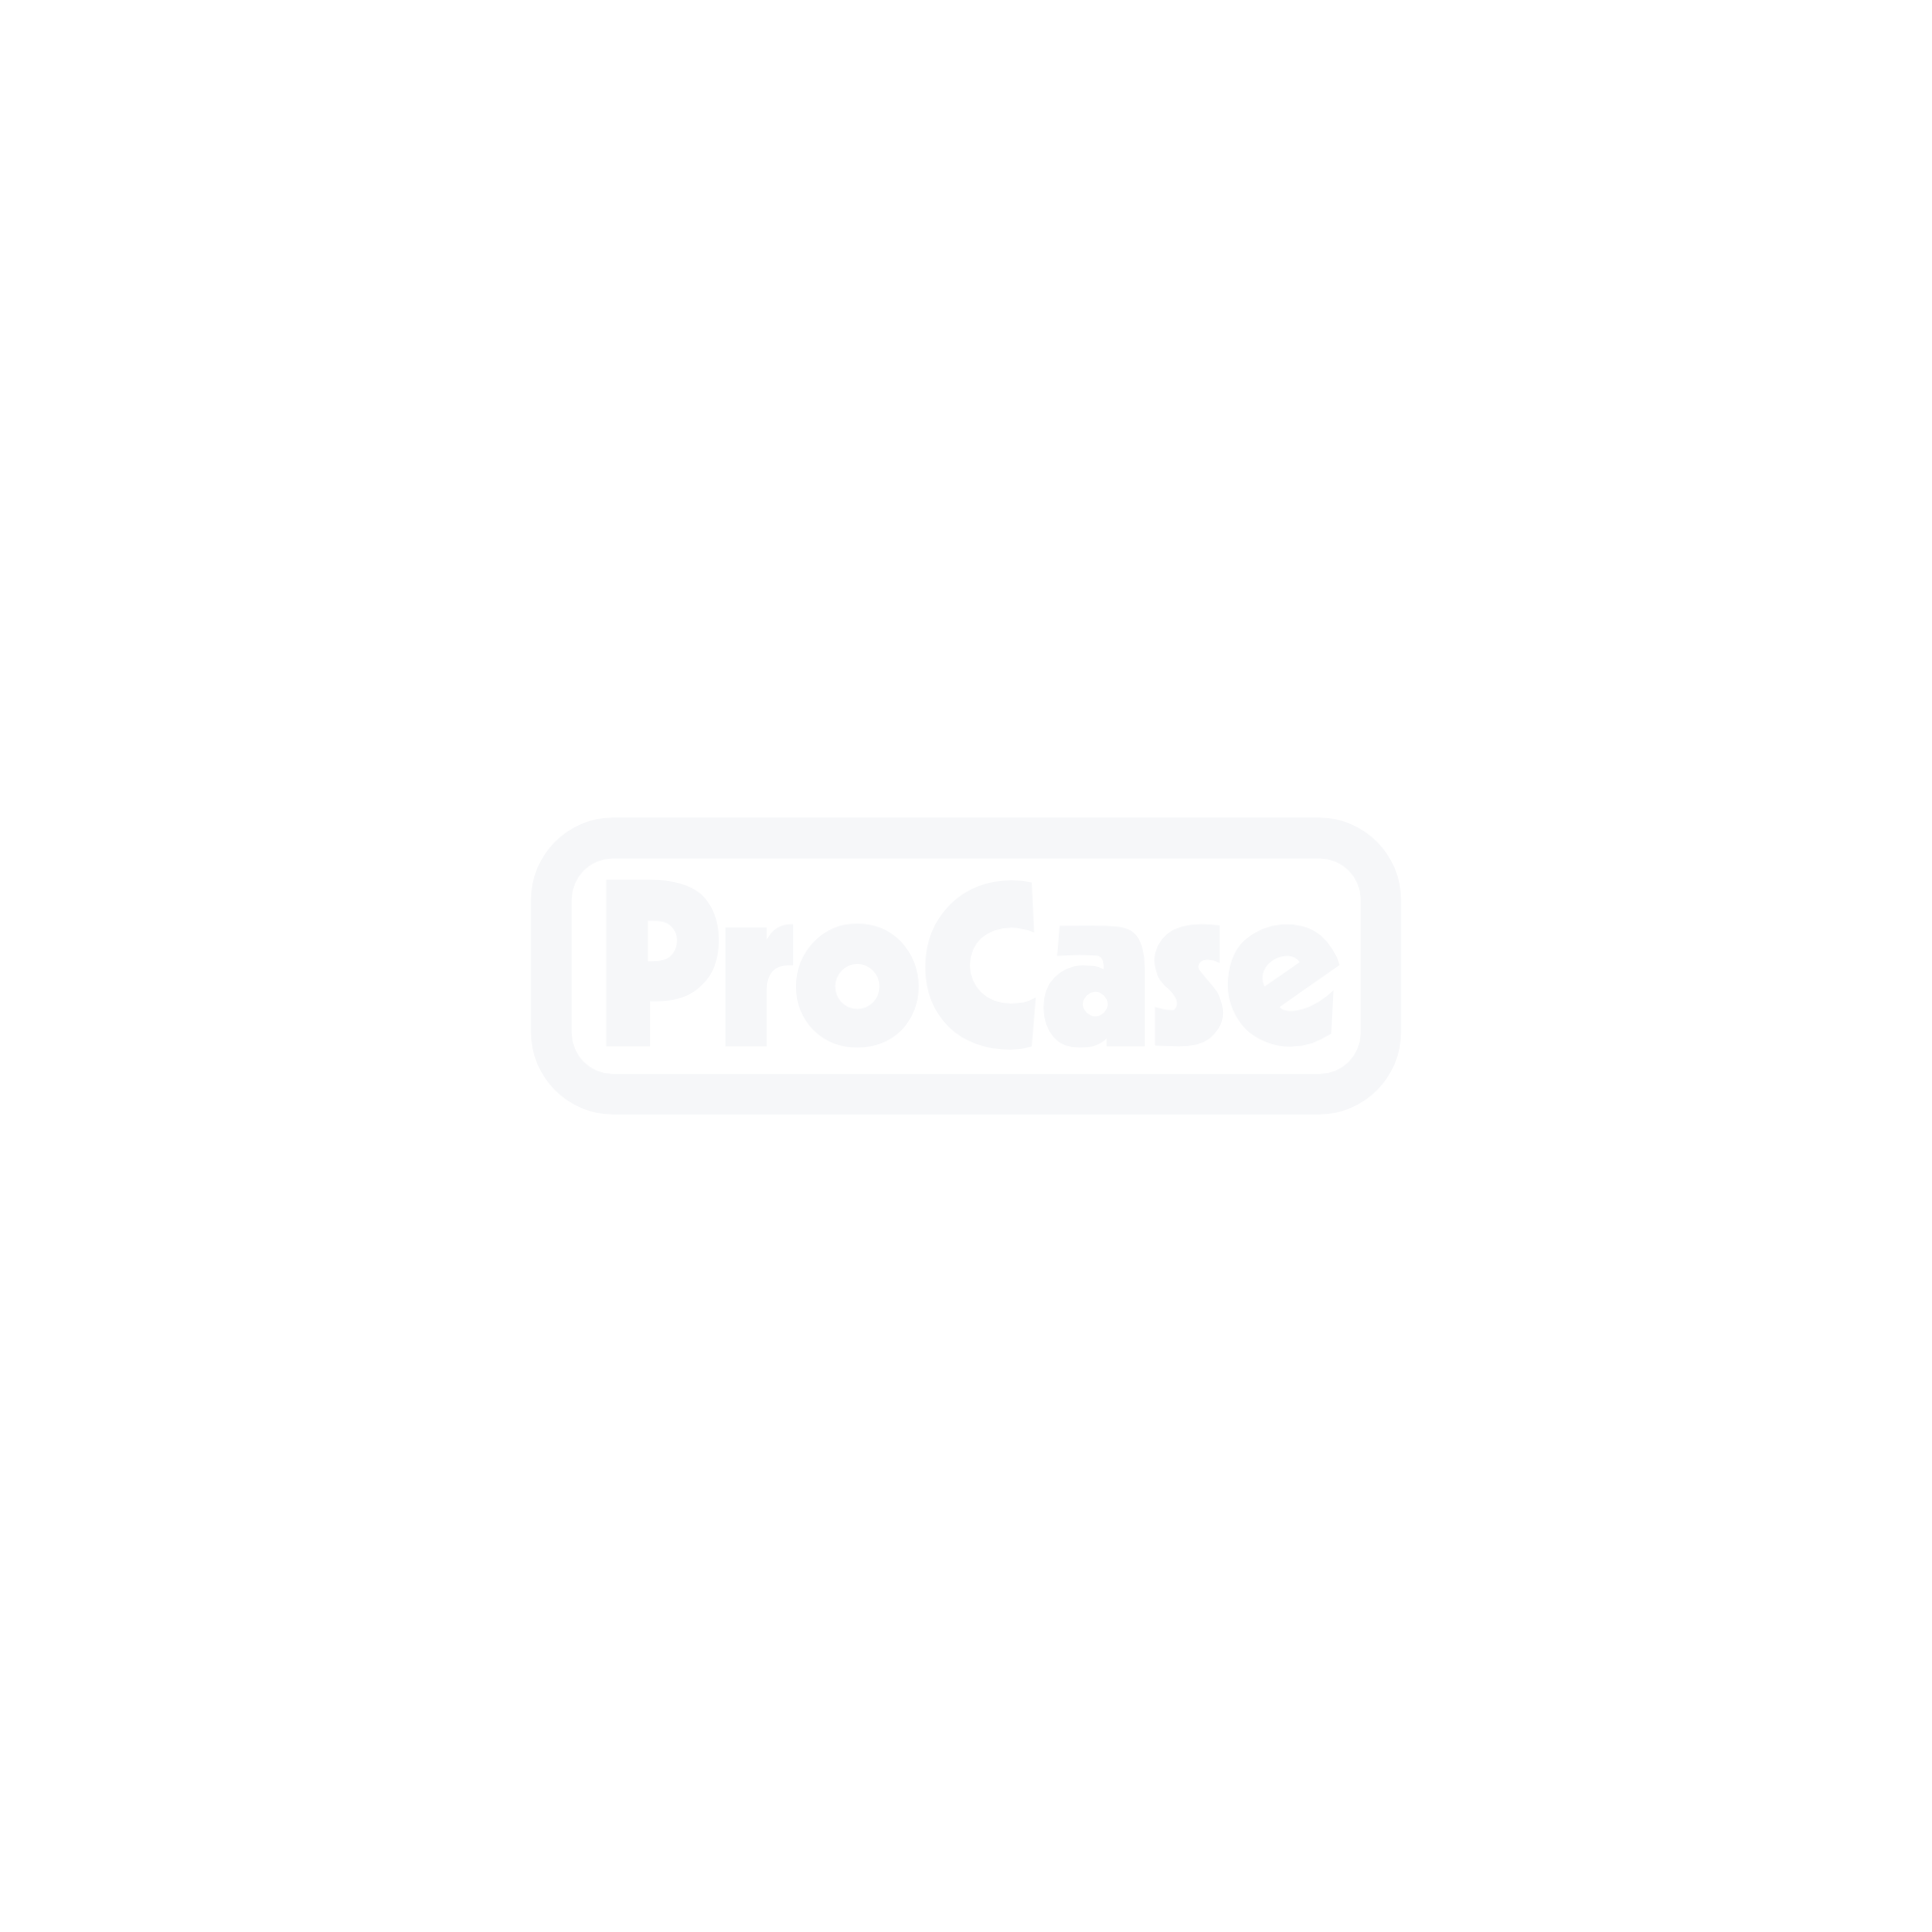 Flightcase für Movecat D8 Plus-C-250-4 250kg